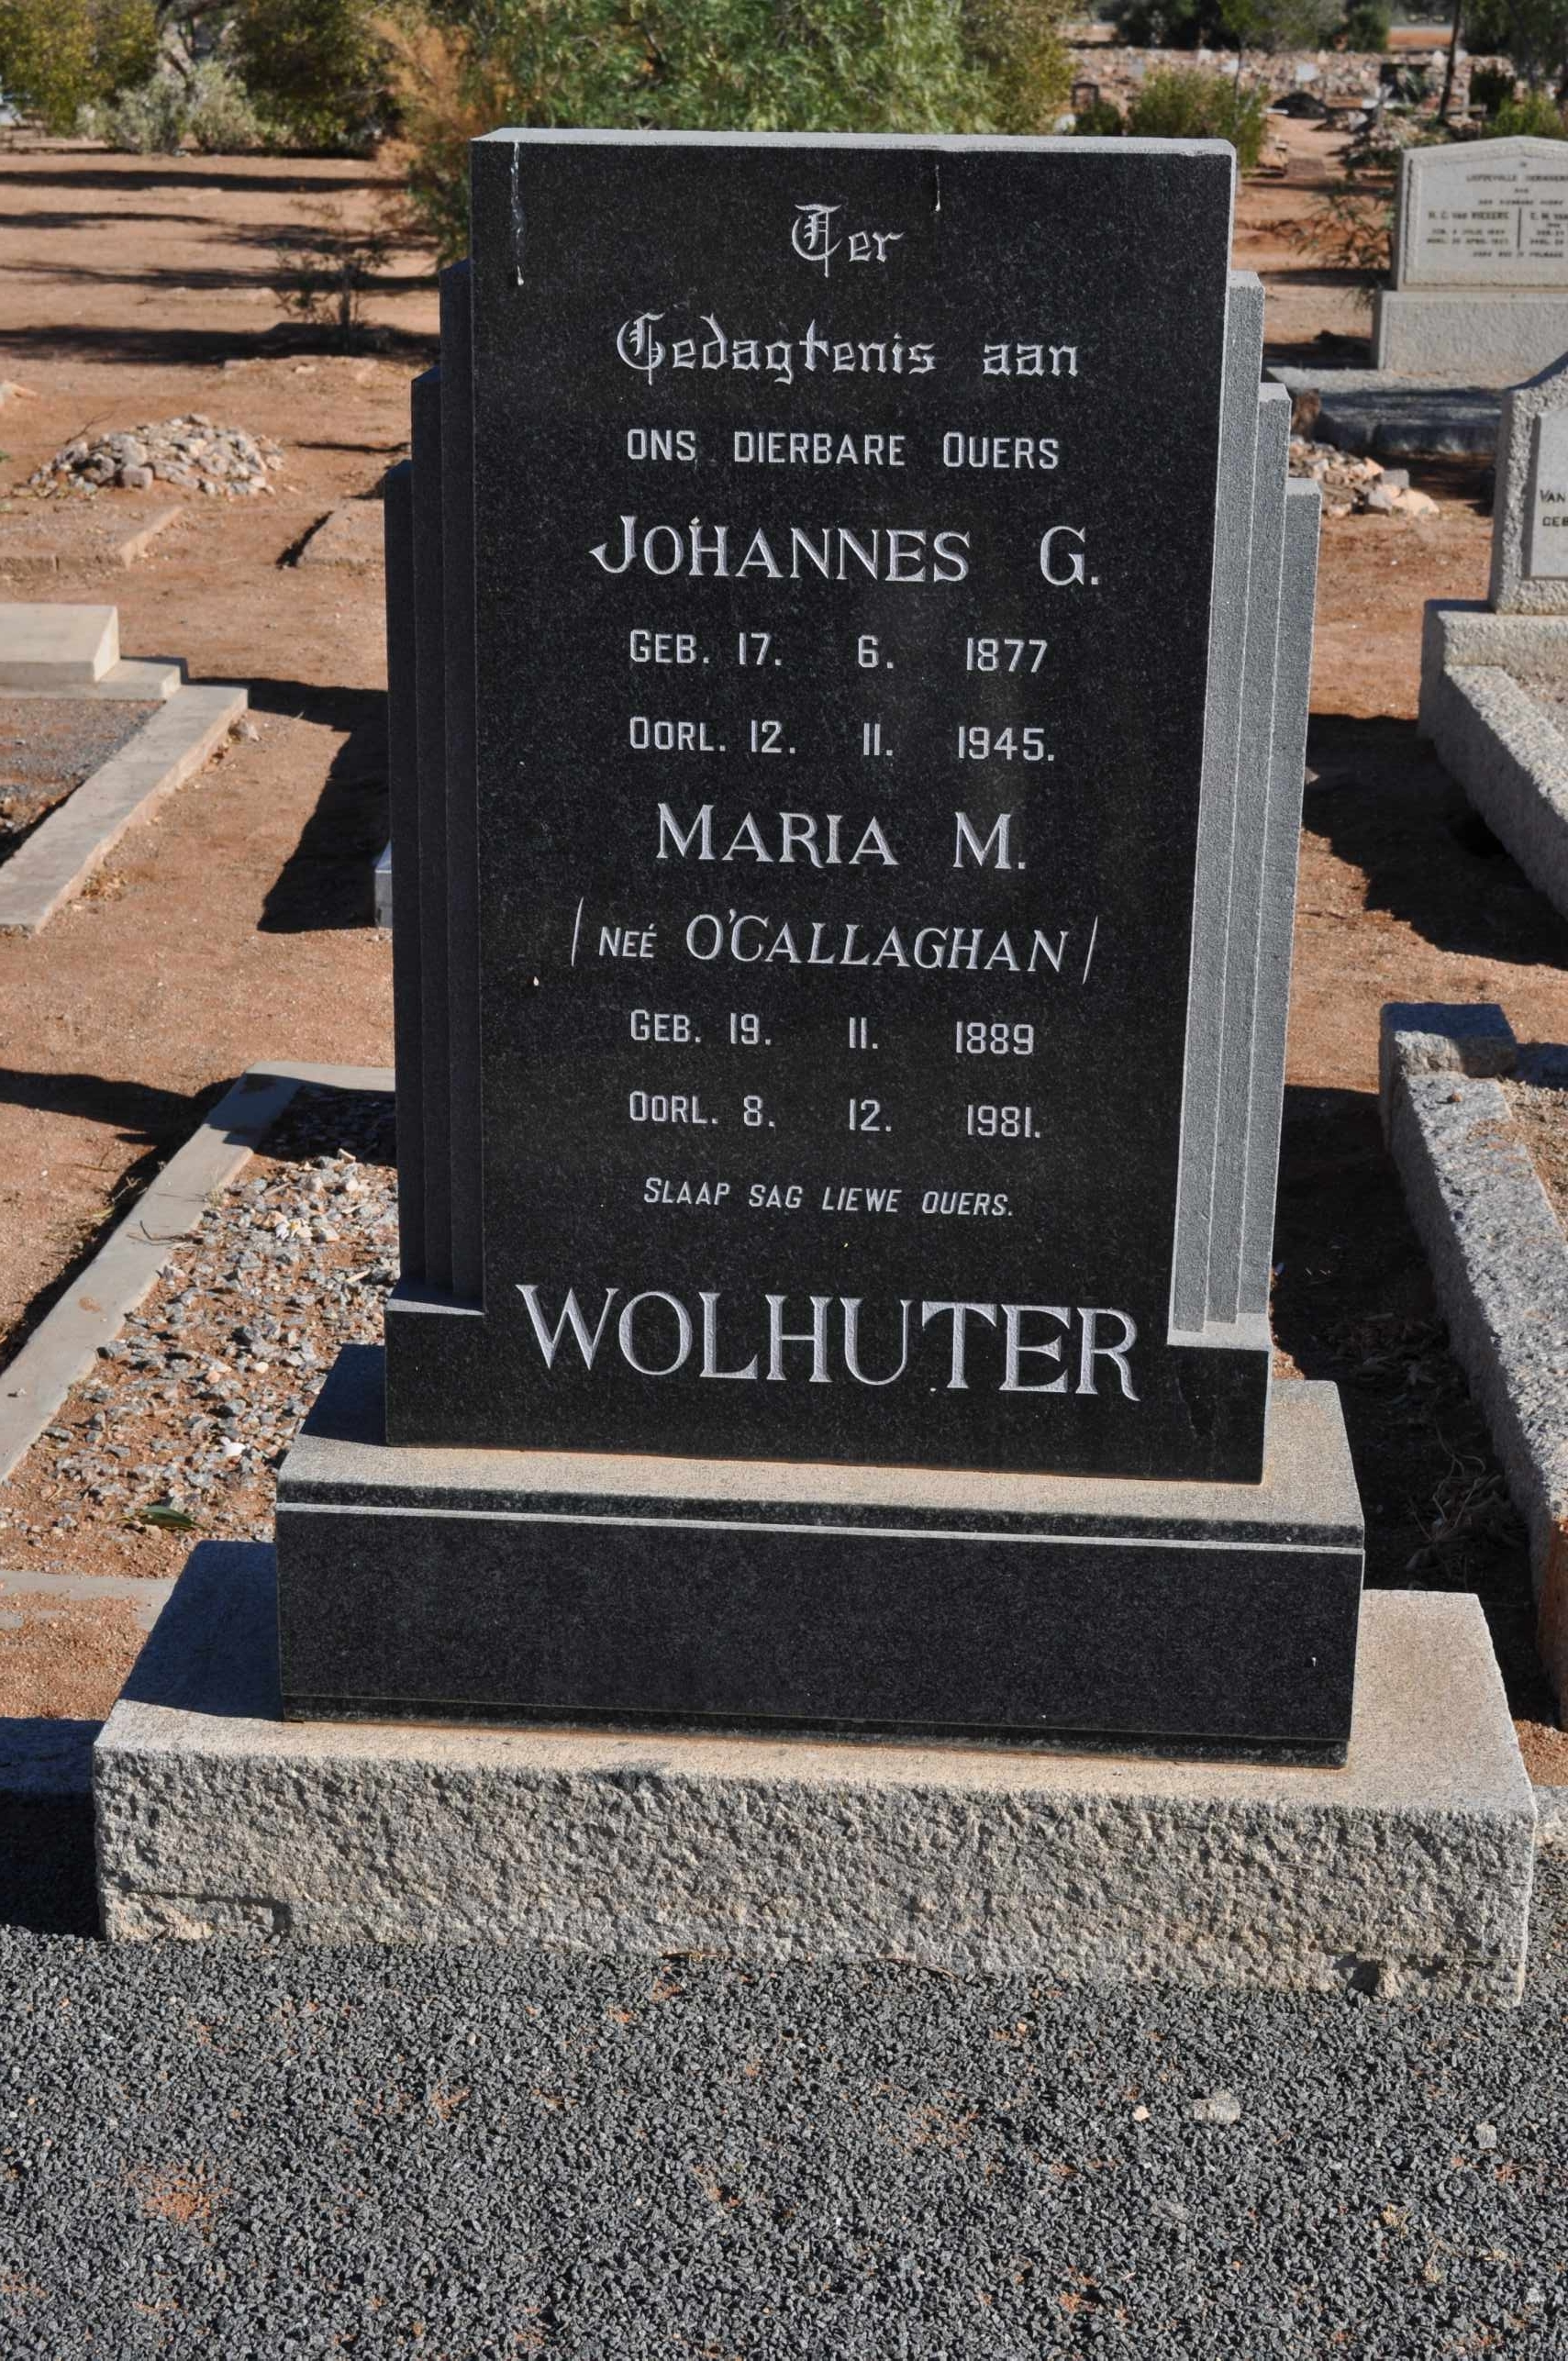 Wolhunter, Johannes G and Maria O'Callaghan